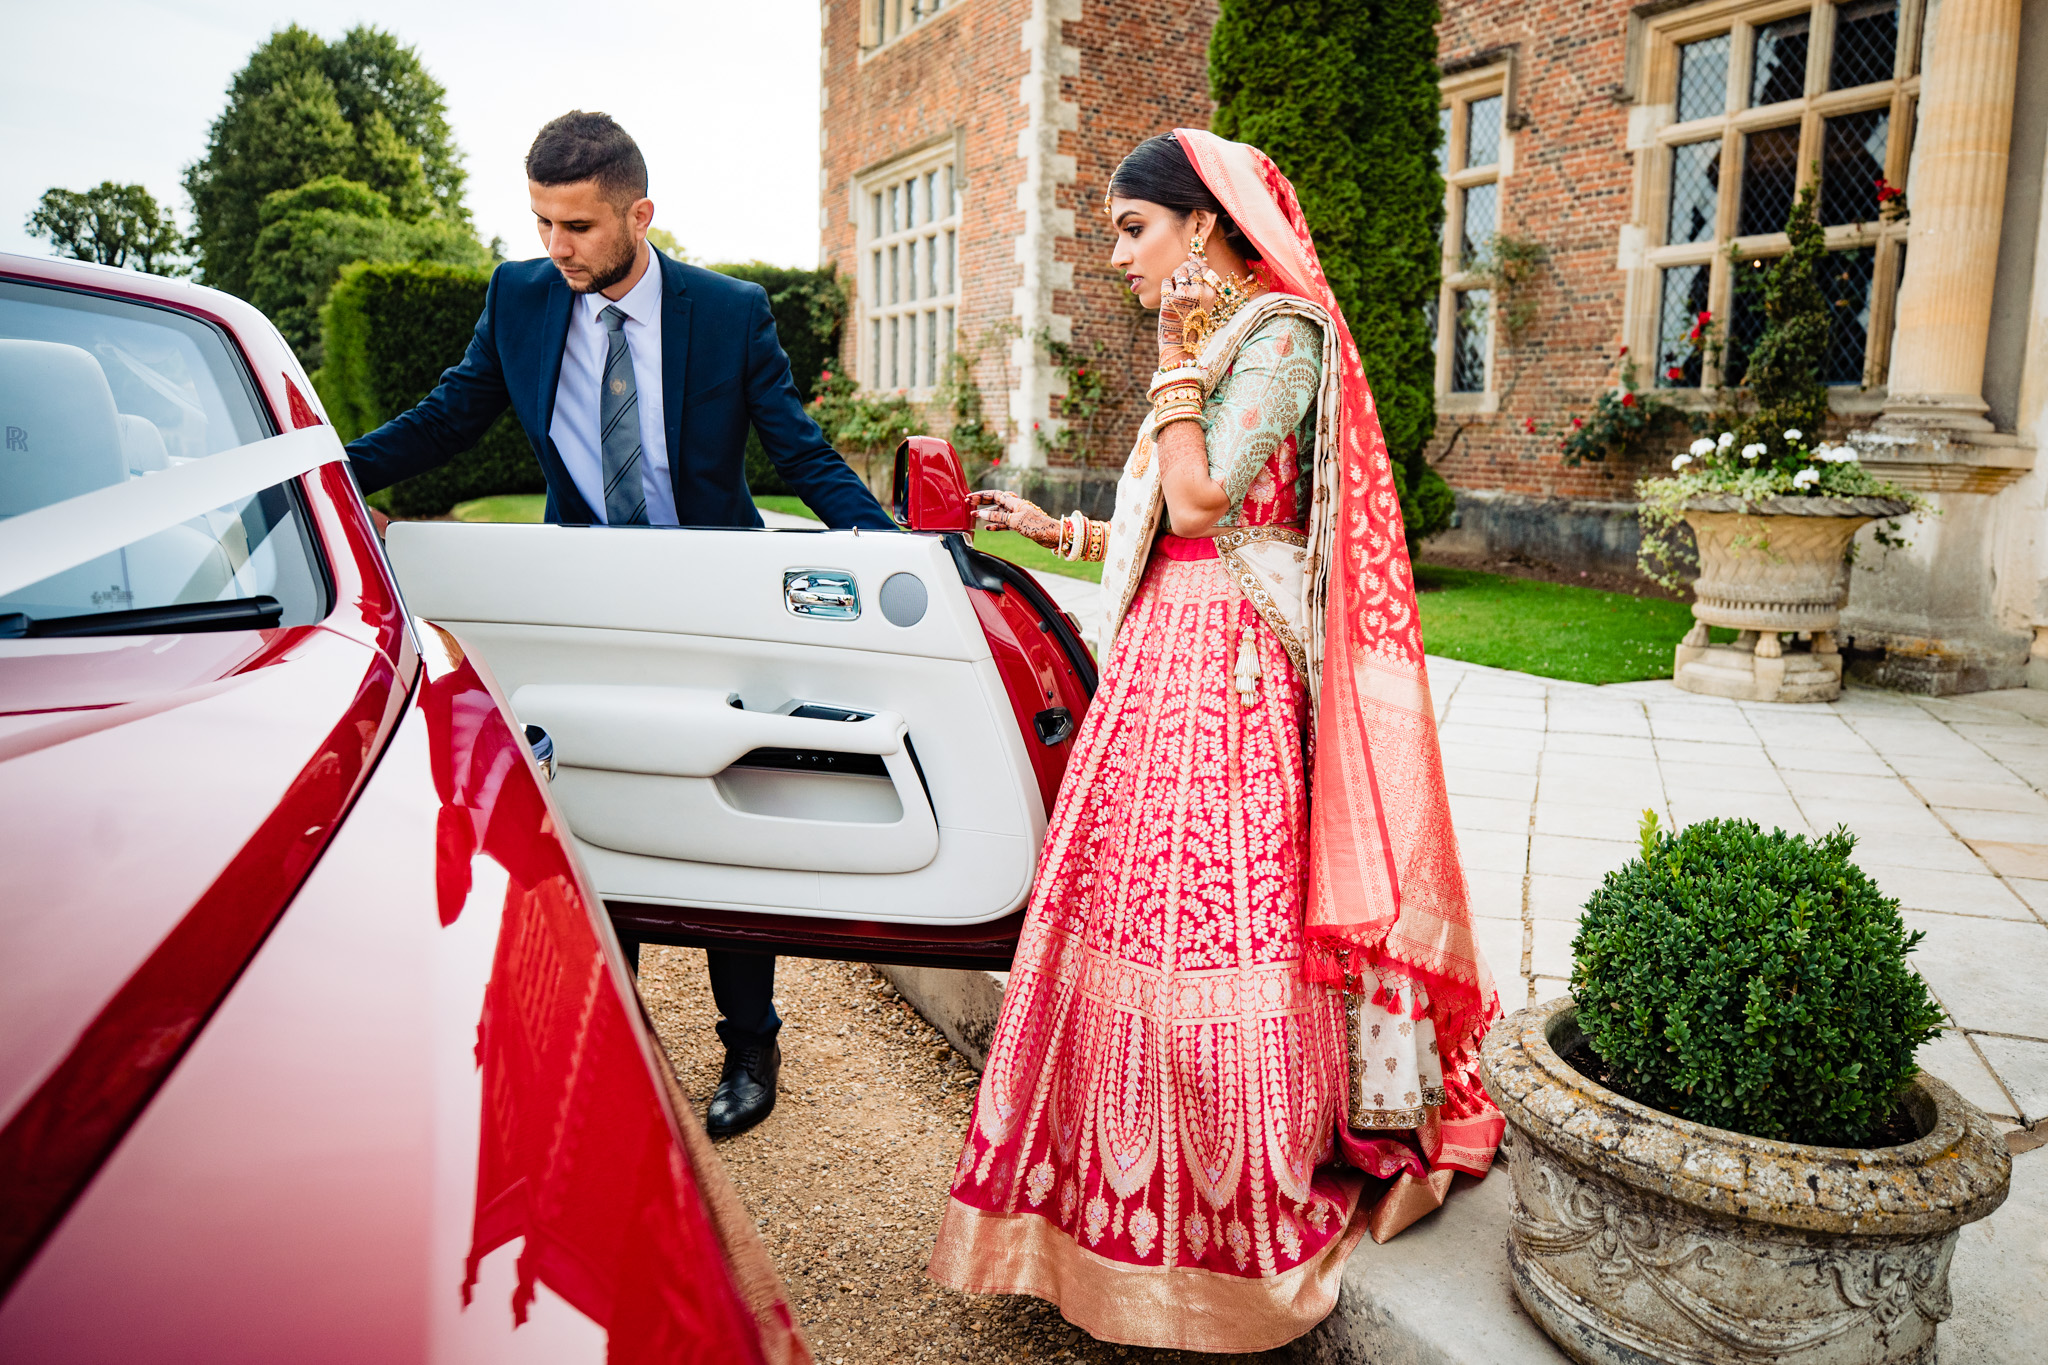 Sikh bride getting into the car at North Mymms Park wedding venue during Sikh wedding